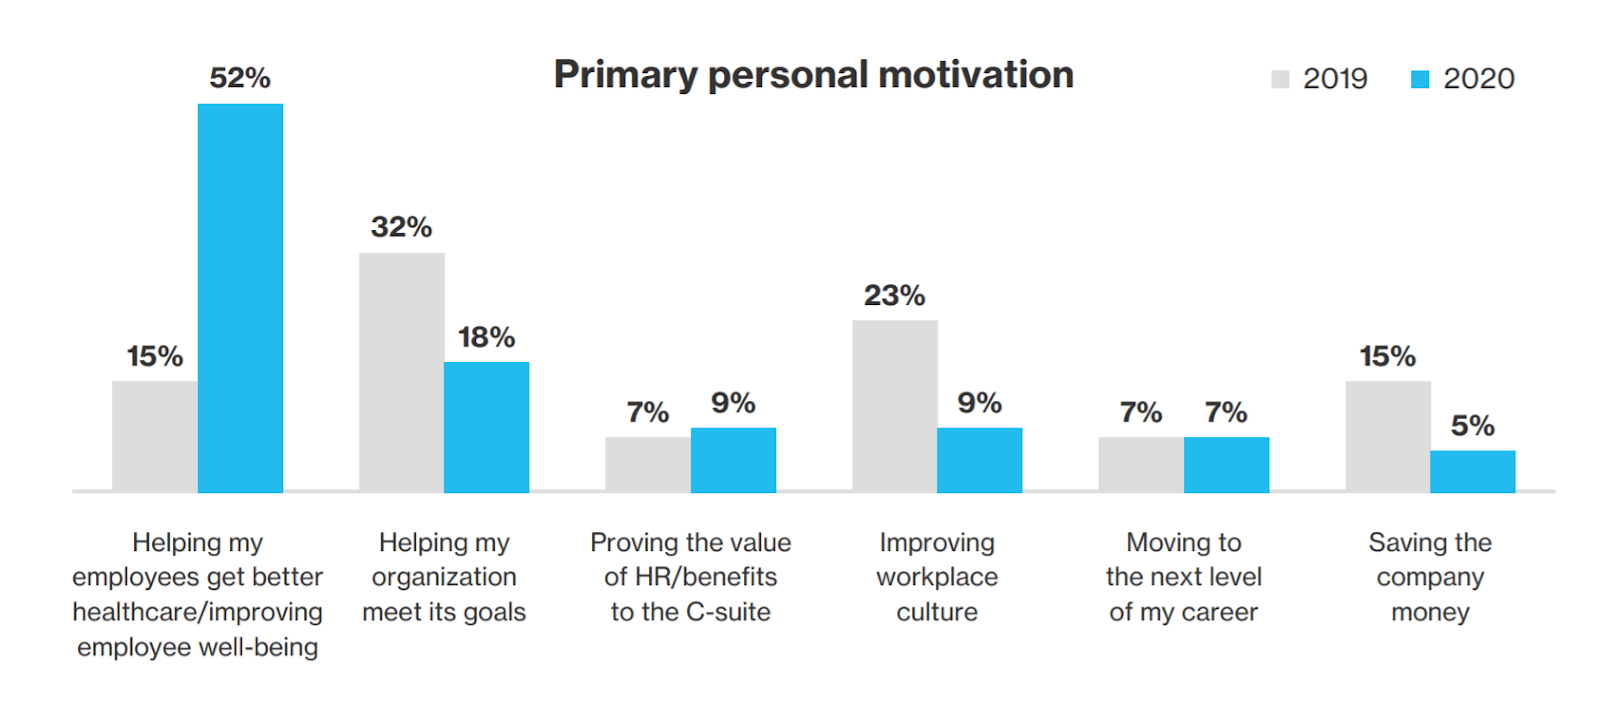 Comparison from 2019 to 2020 on primary personal motivation of benefit leaders.